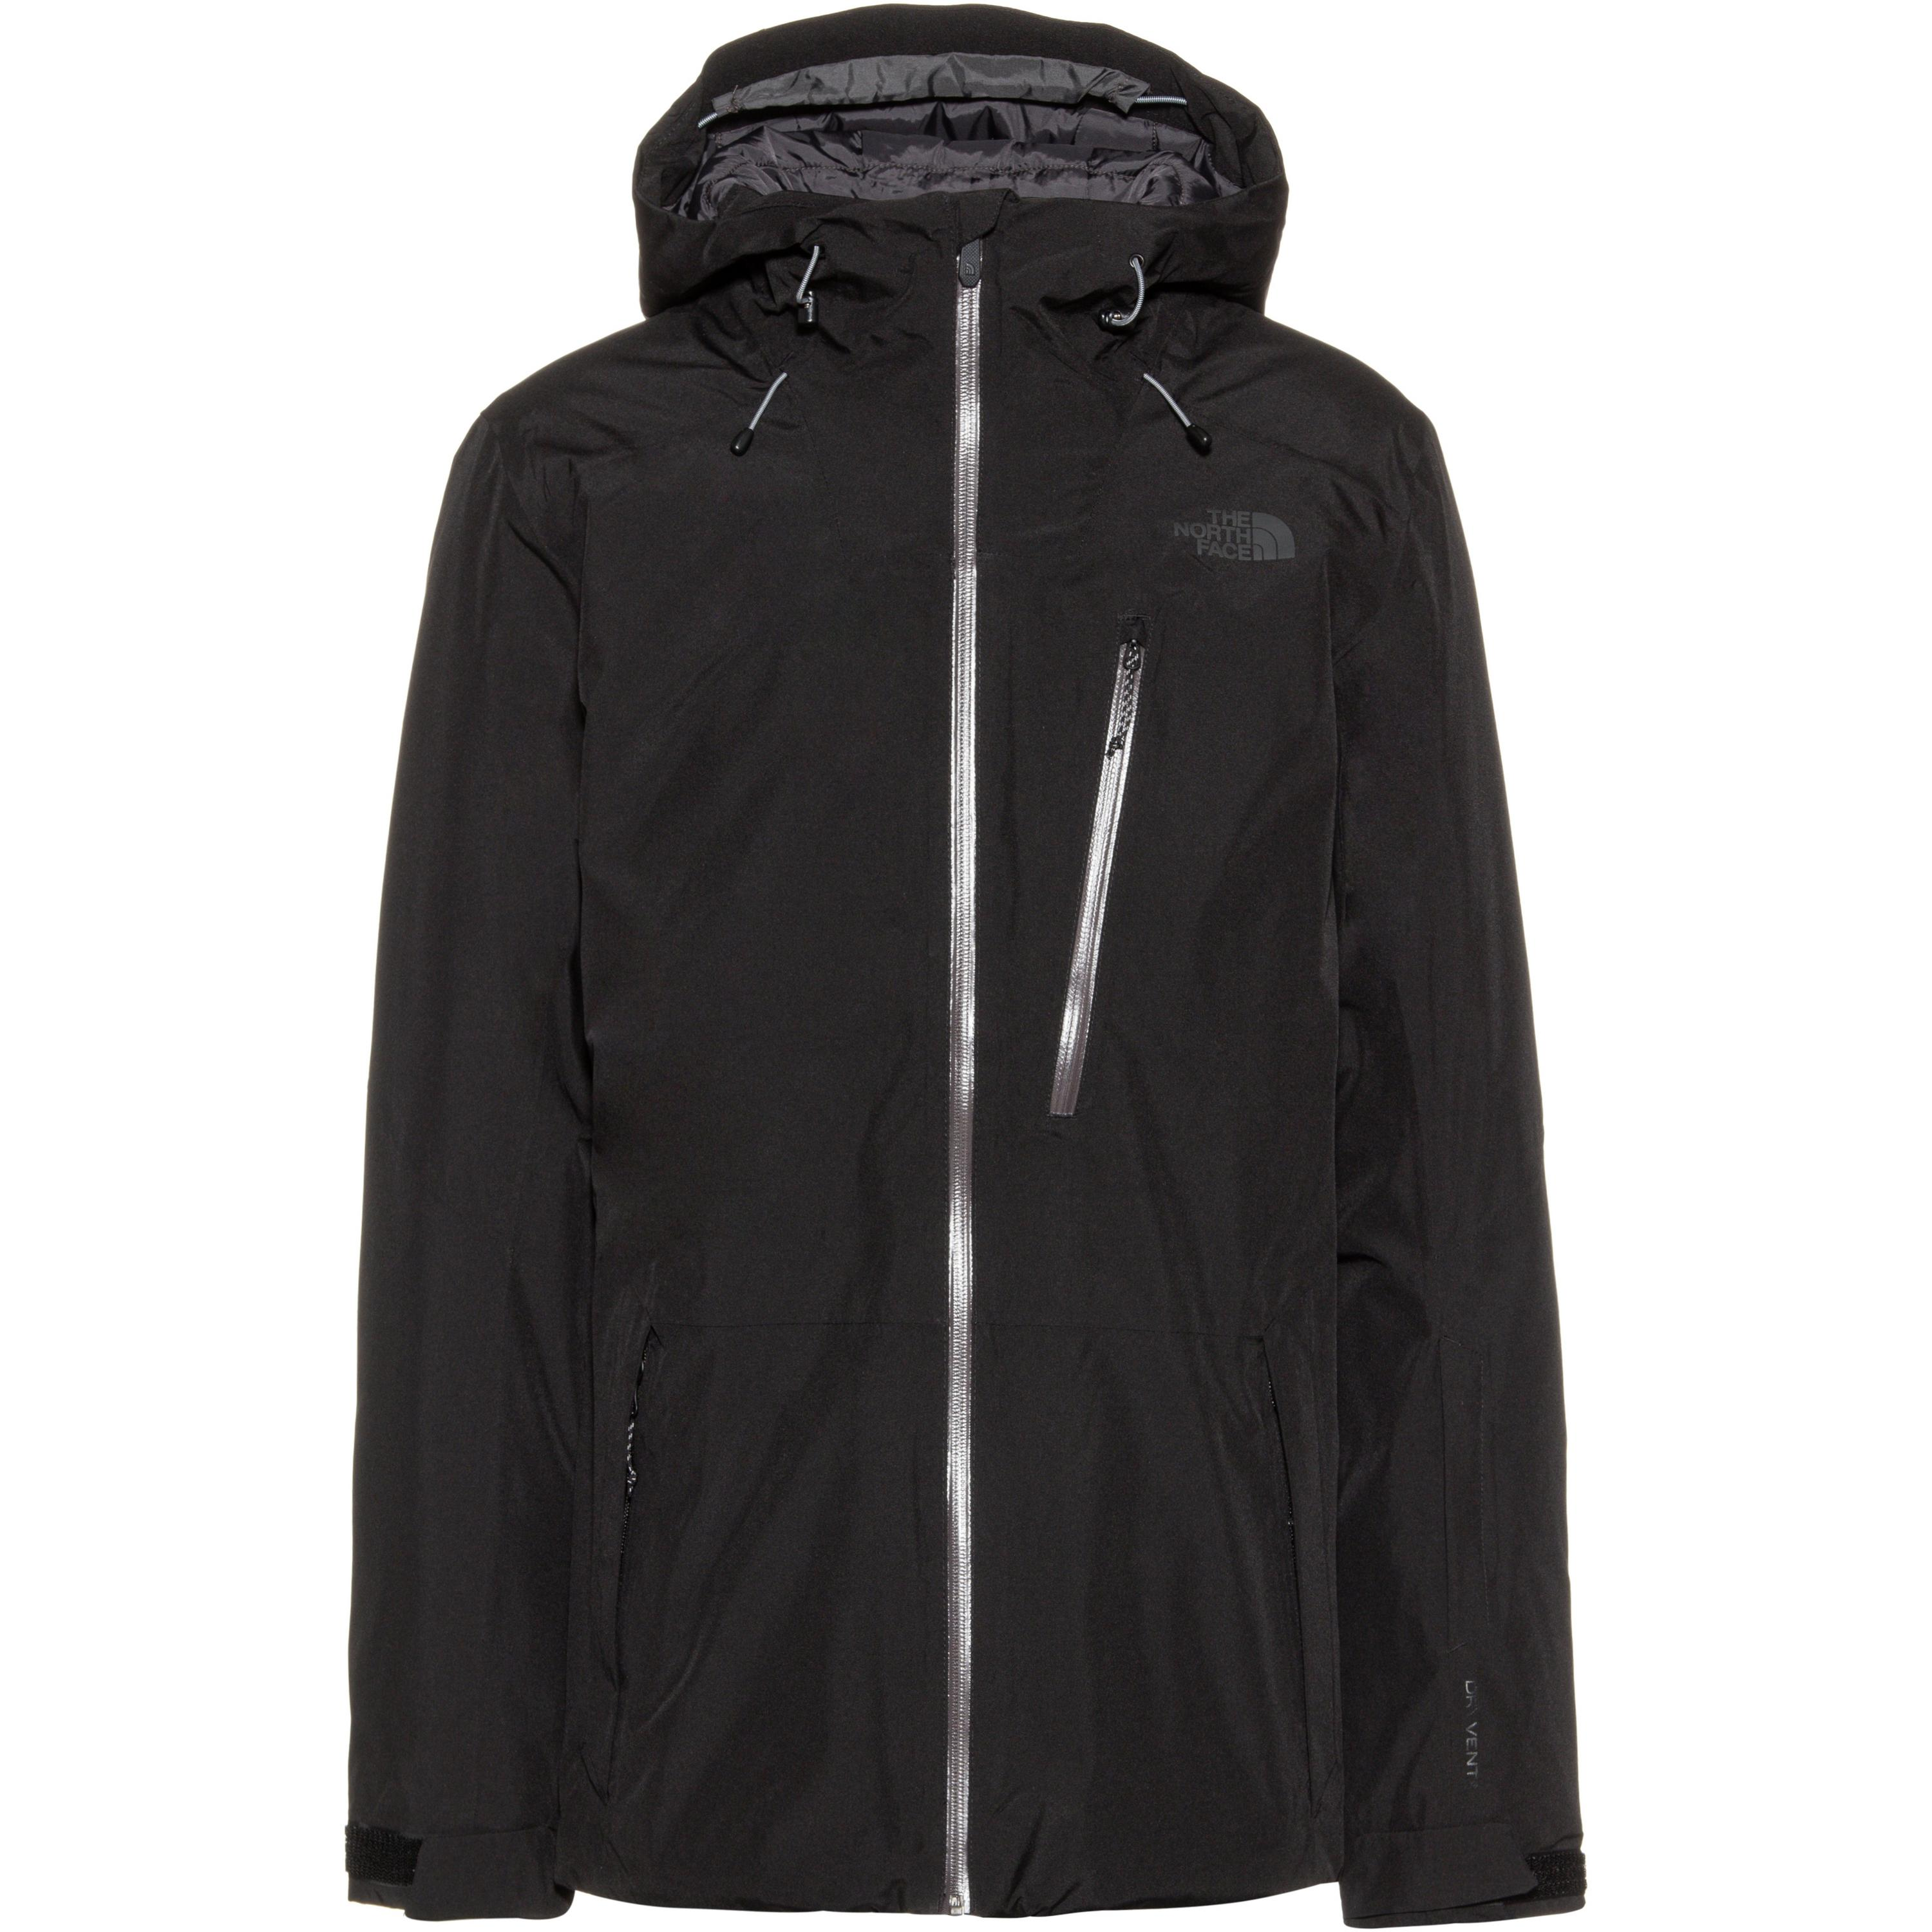 The North Face Descendit Skijacke Herren (schwarz, XL)